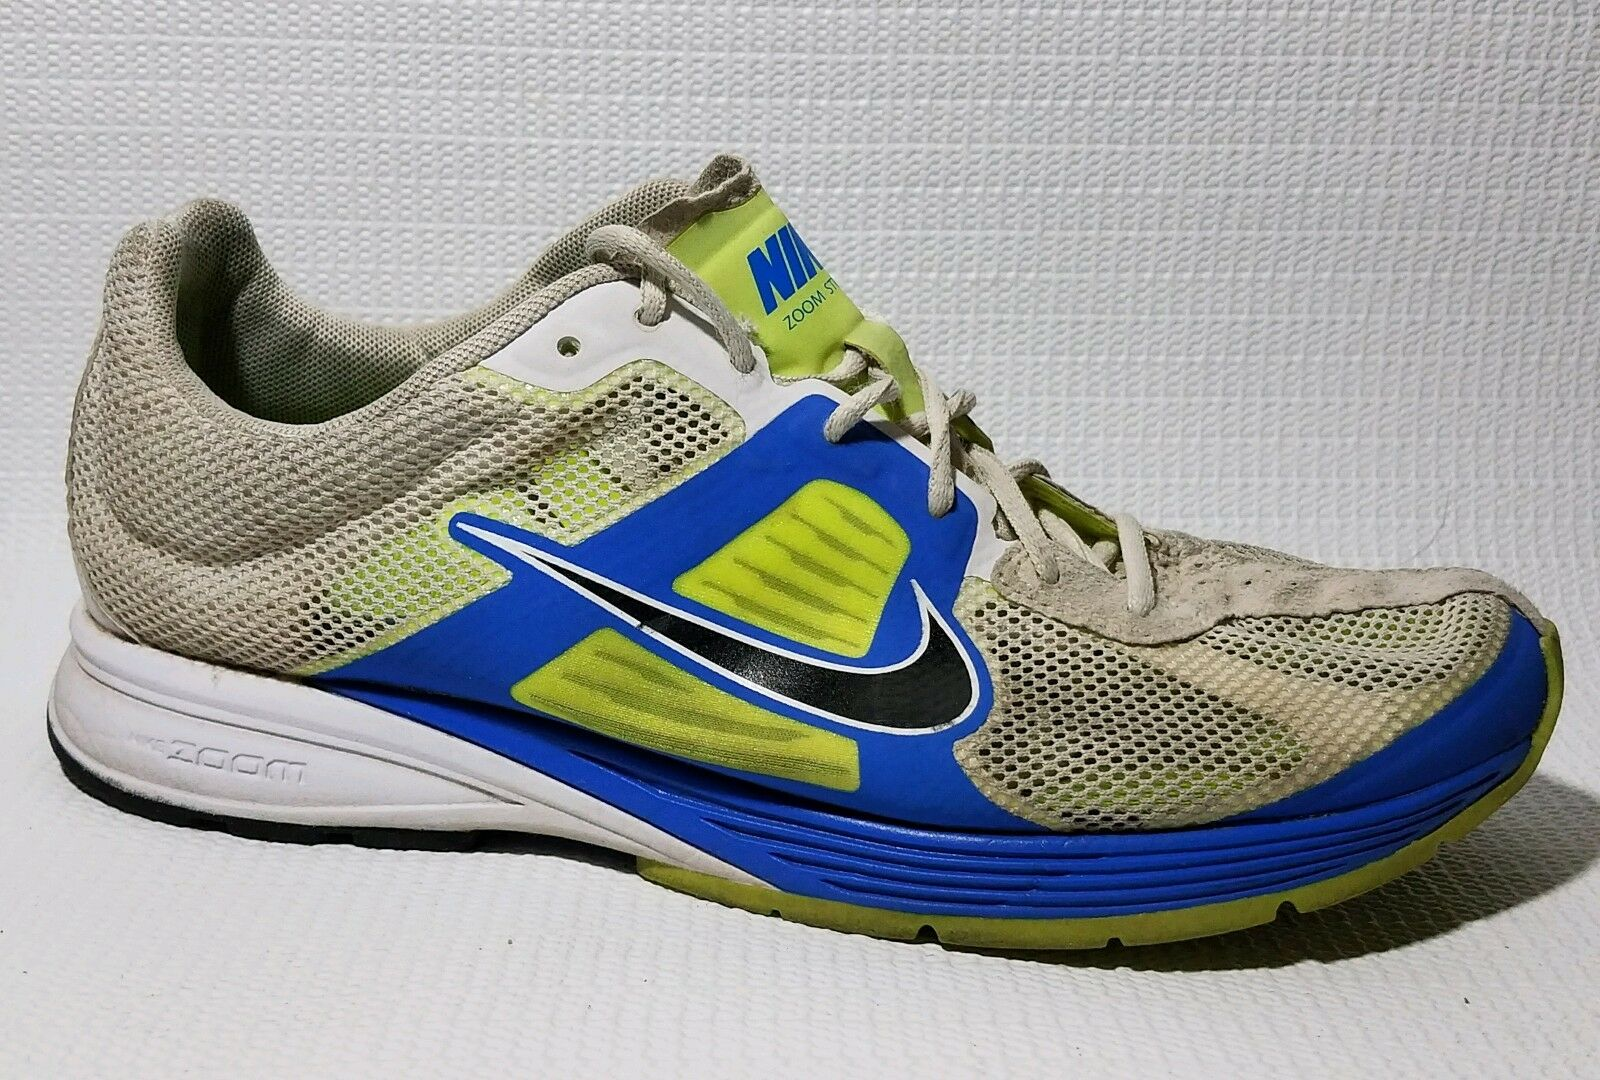 Nike Zoom Streak Mens 7.5 M Shoes 511591-174 Sneaker Running Light Weight White The most popular shoes for men and women